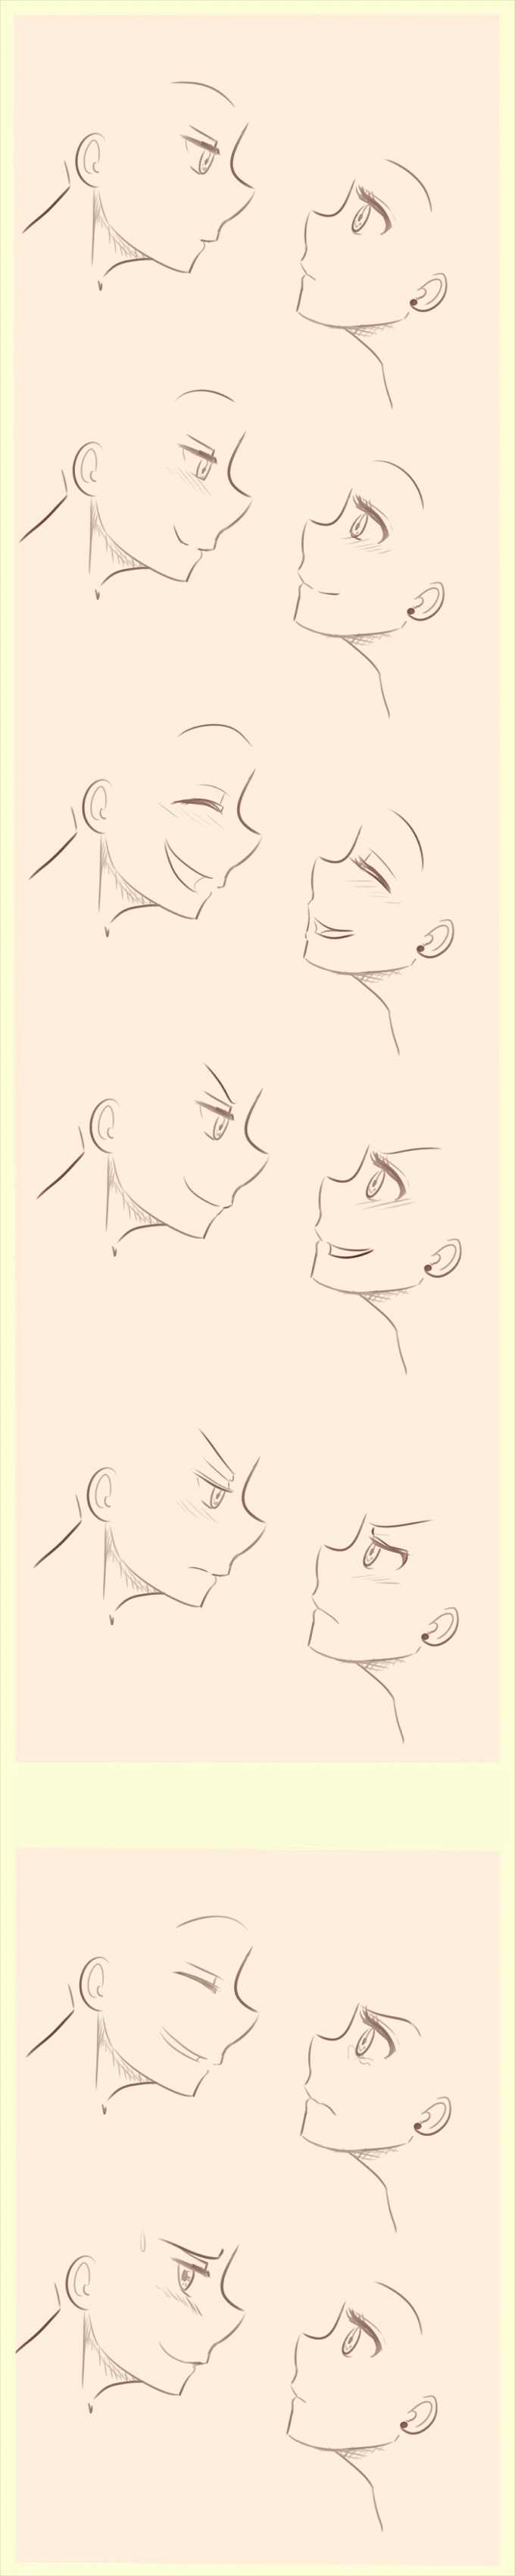 Anime/Manga Side profile expressions reference. by littlesomethings